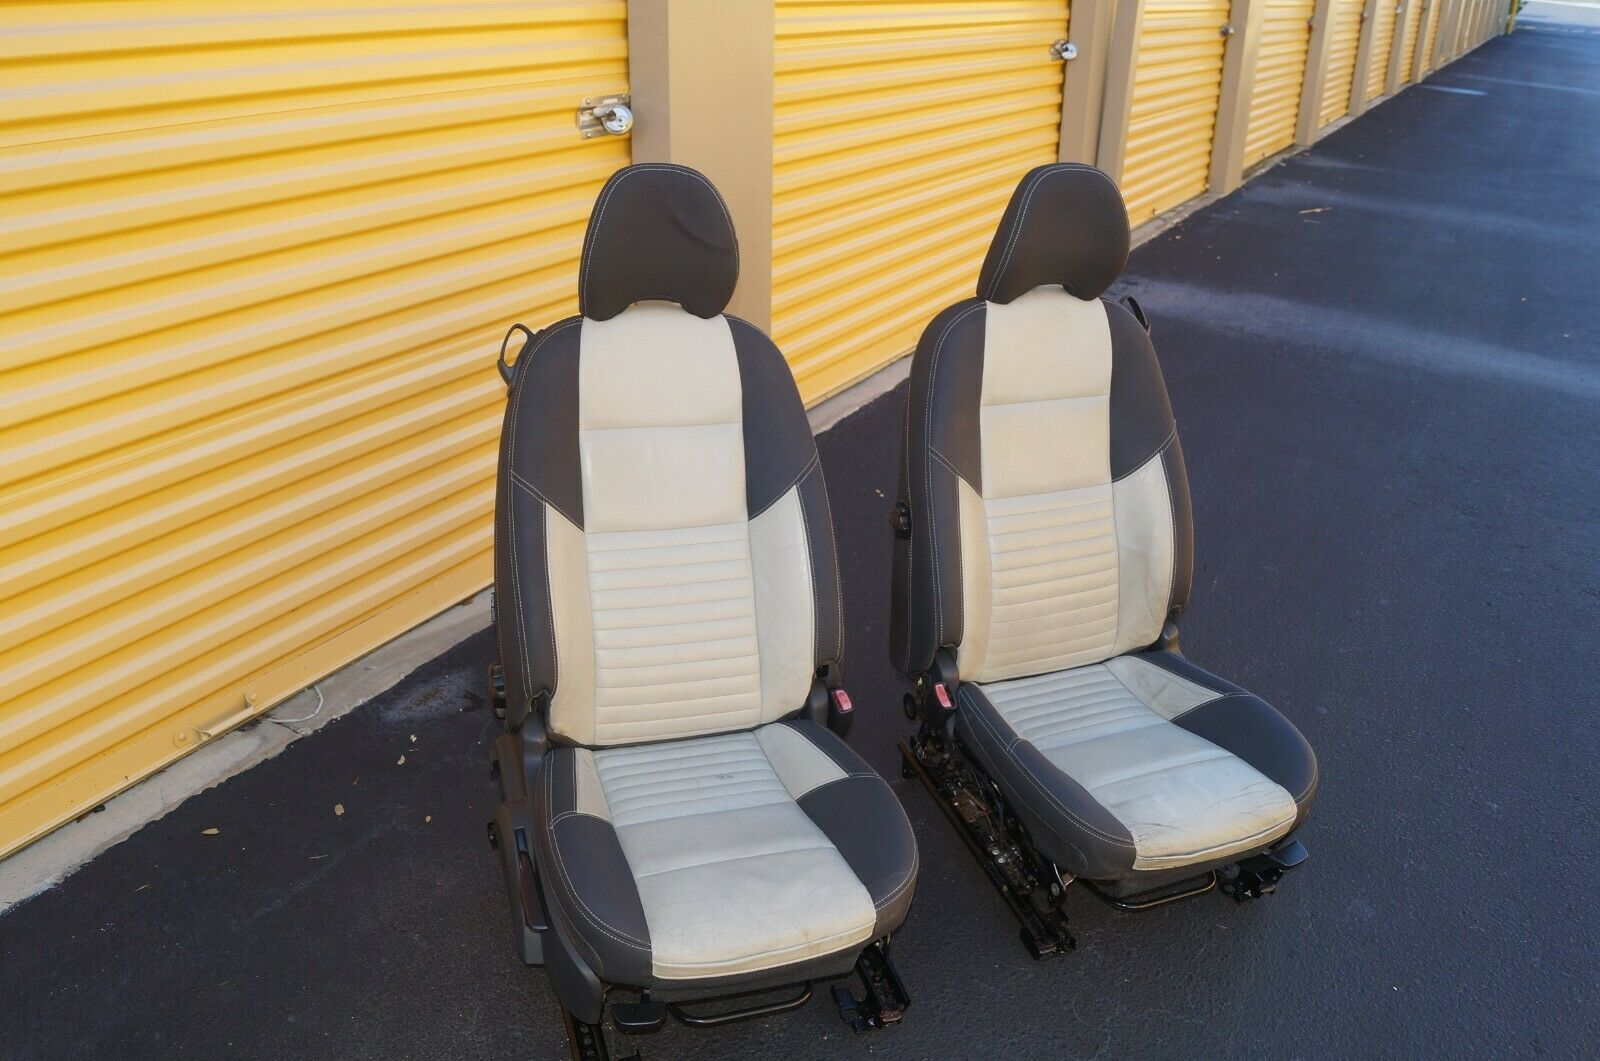 08 Volvo C30 R-DESIGN Front Seats W/ Airbags & Tracks